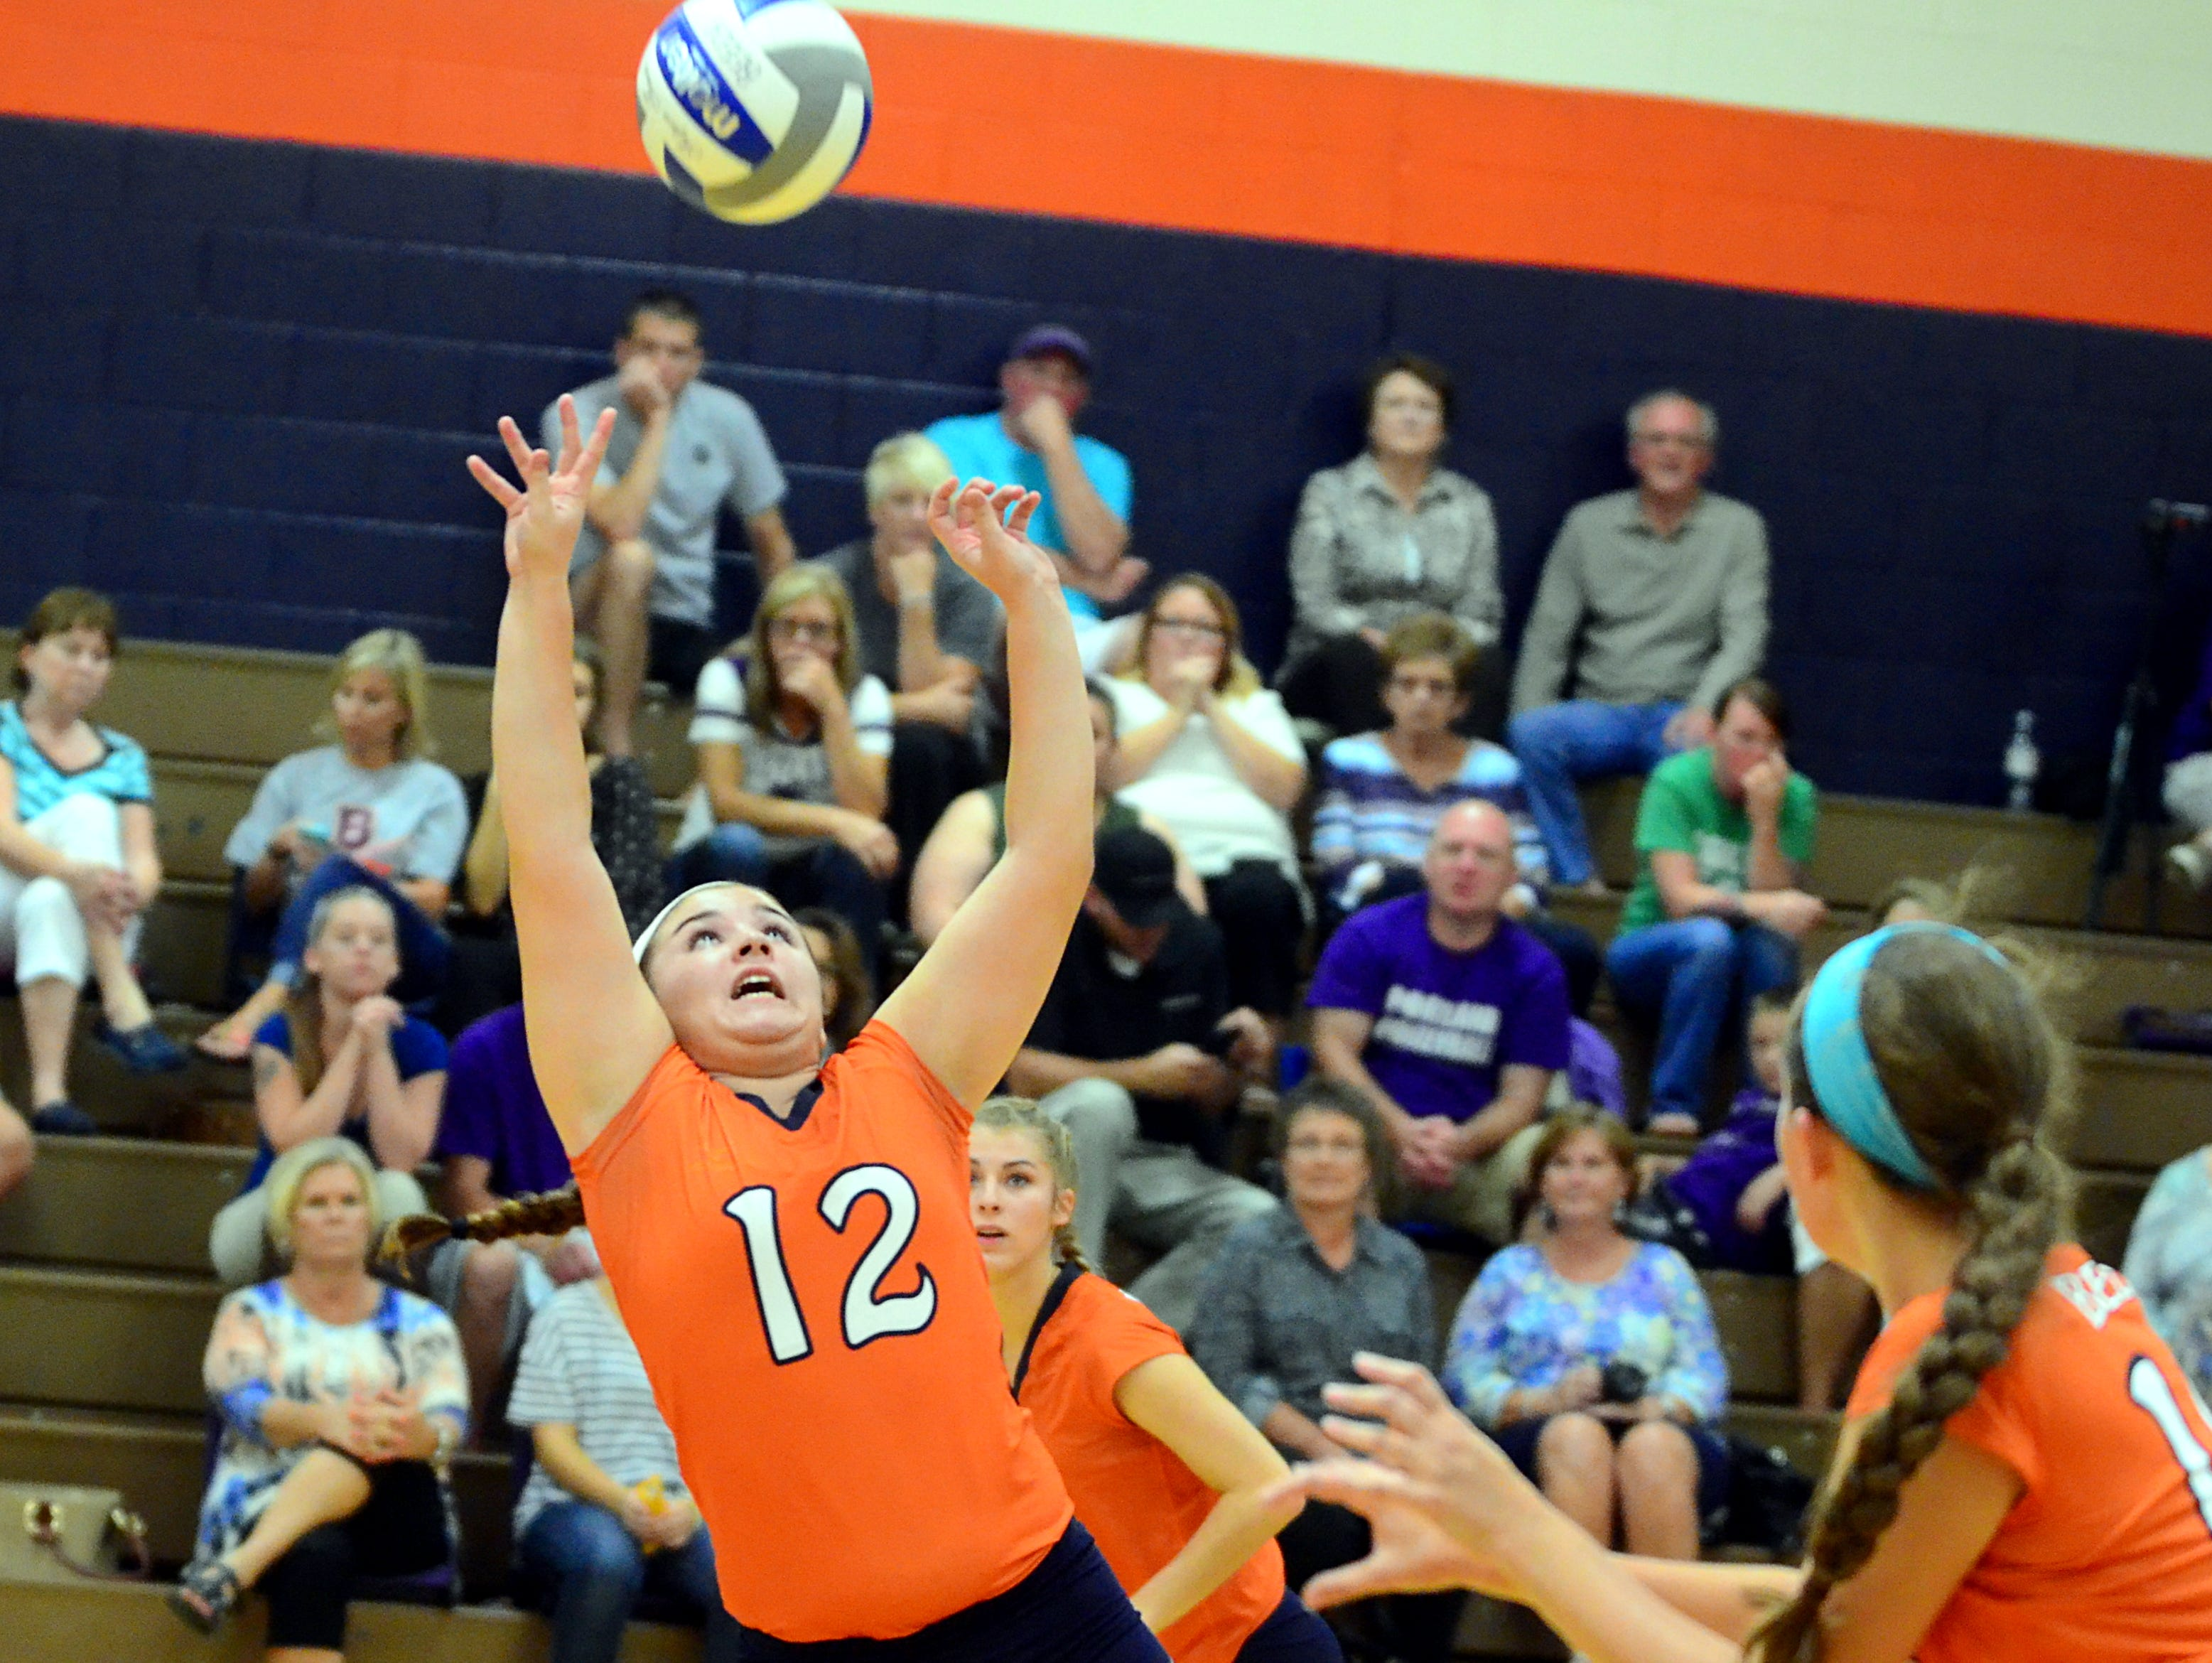 Beech senior Reeves Parrish controls a set as she falls during Tuesday's match against Portland. The Lady Buccaneers won in five sets.